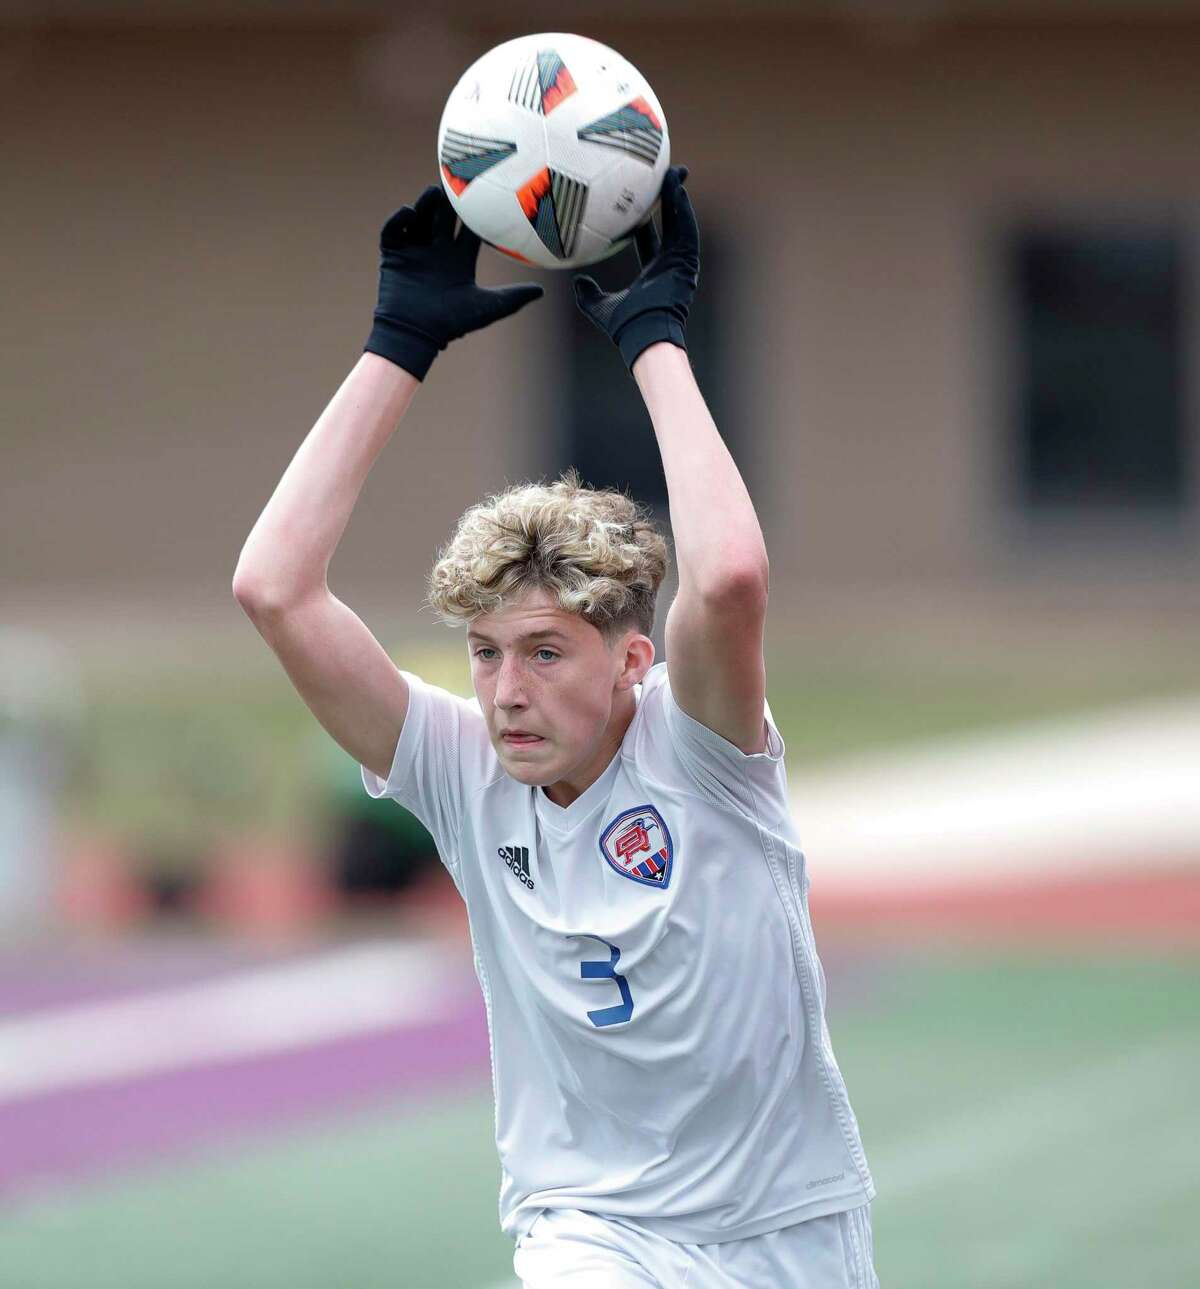 Oak Ridge's Jacob Webb (3) throws the ball in bounds in the first period of a match during the Wildkat Showcase soccer tournament at Berton A. Yates Stadium, Friday, Jan. 8, 2021, in Willis.